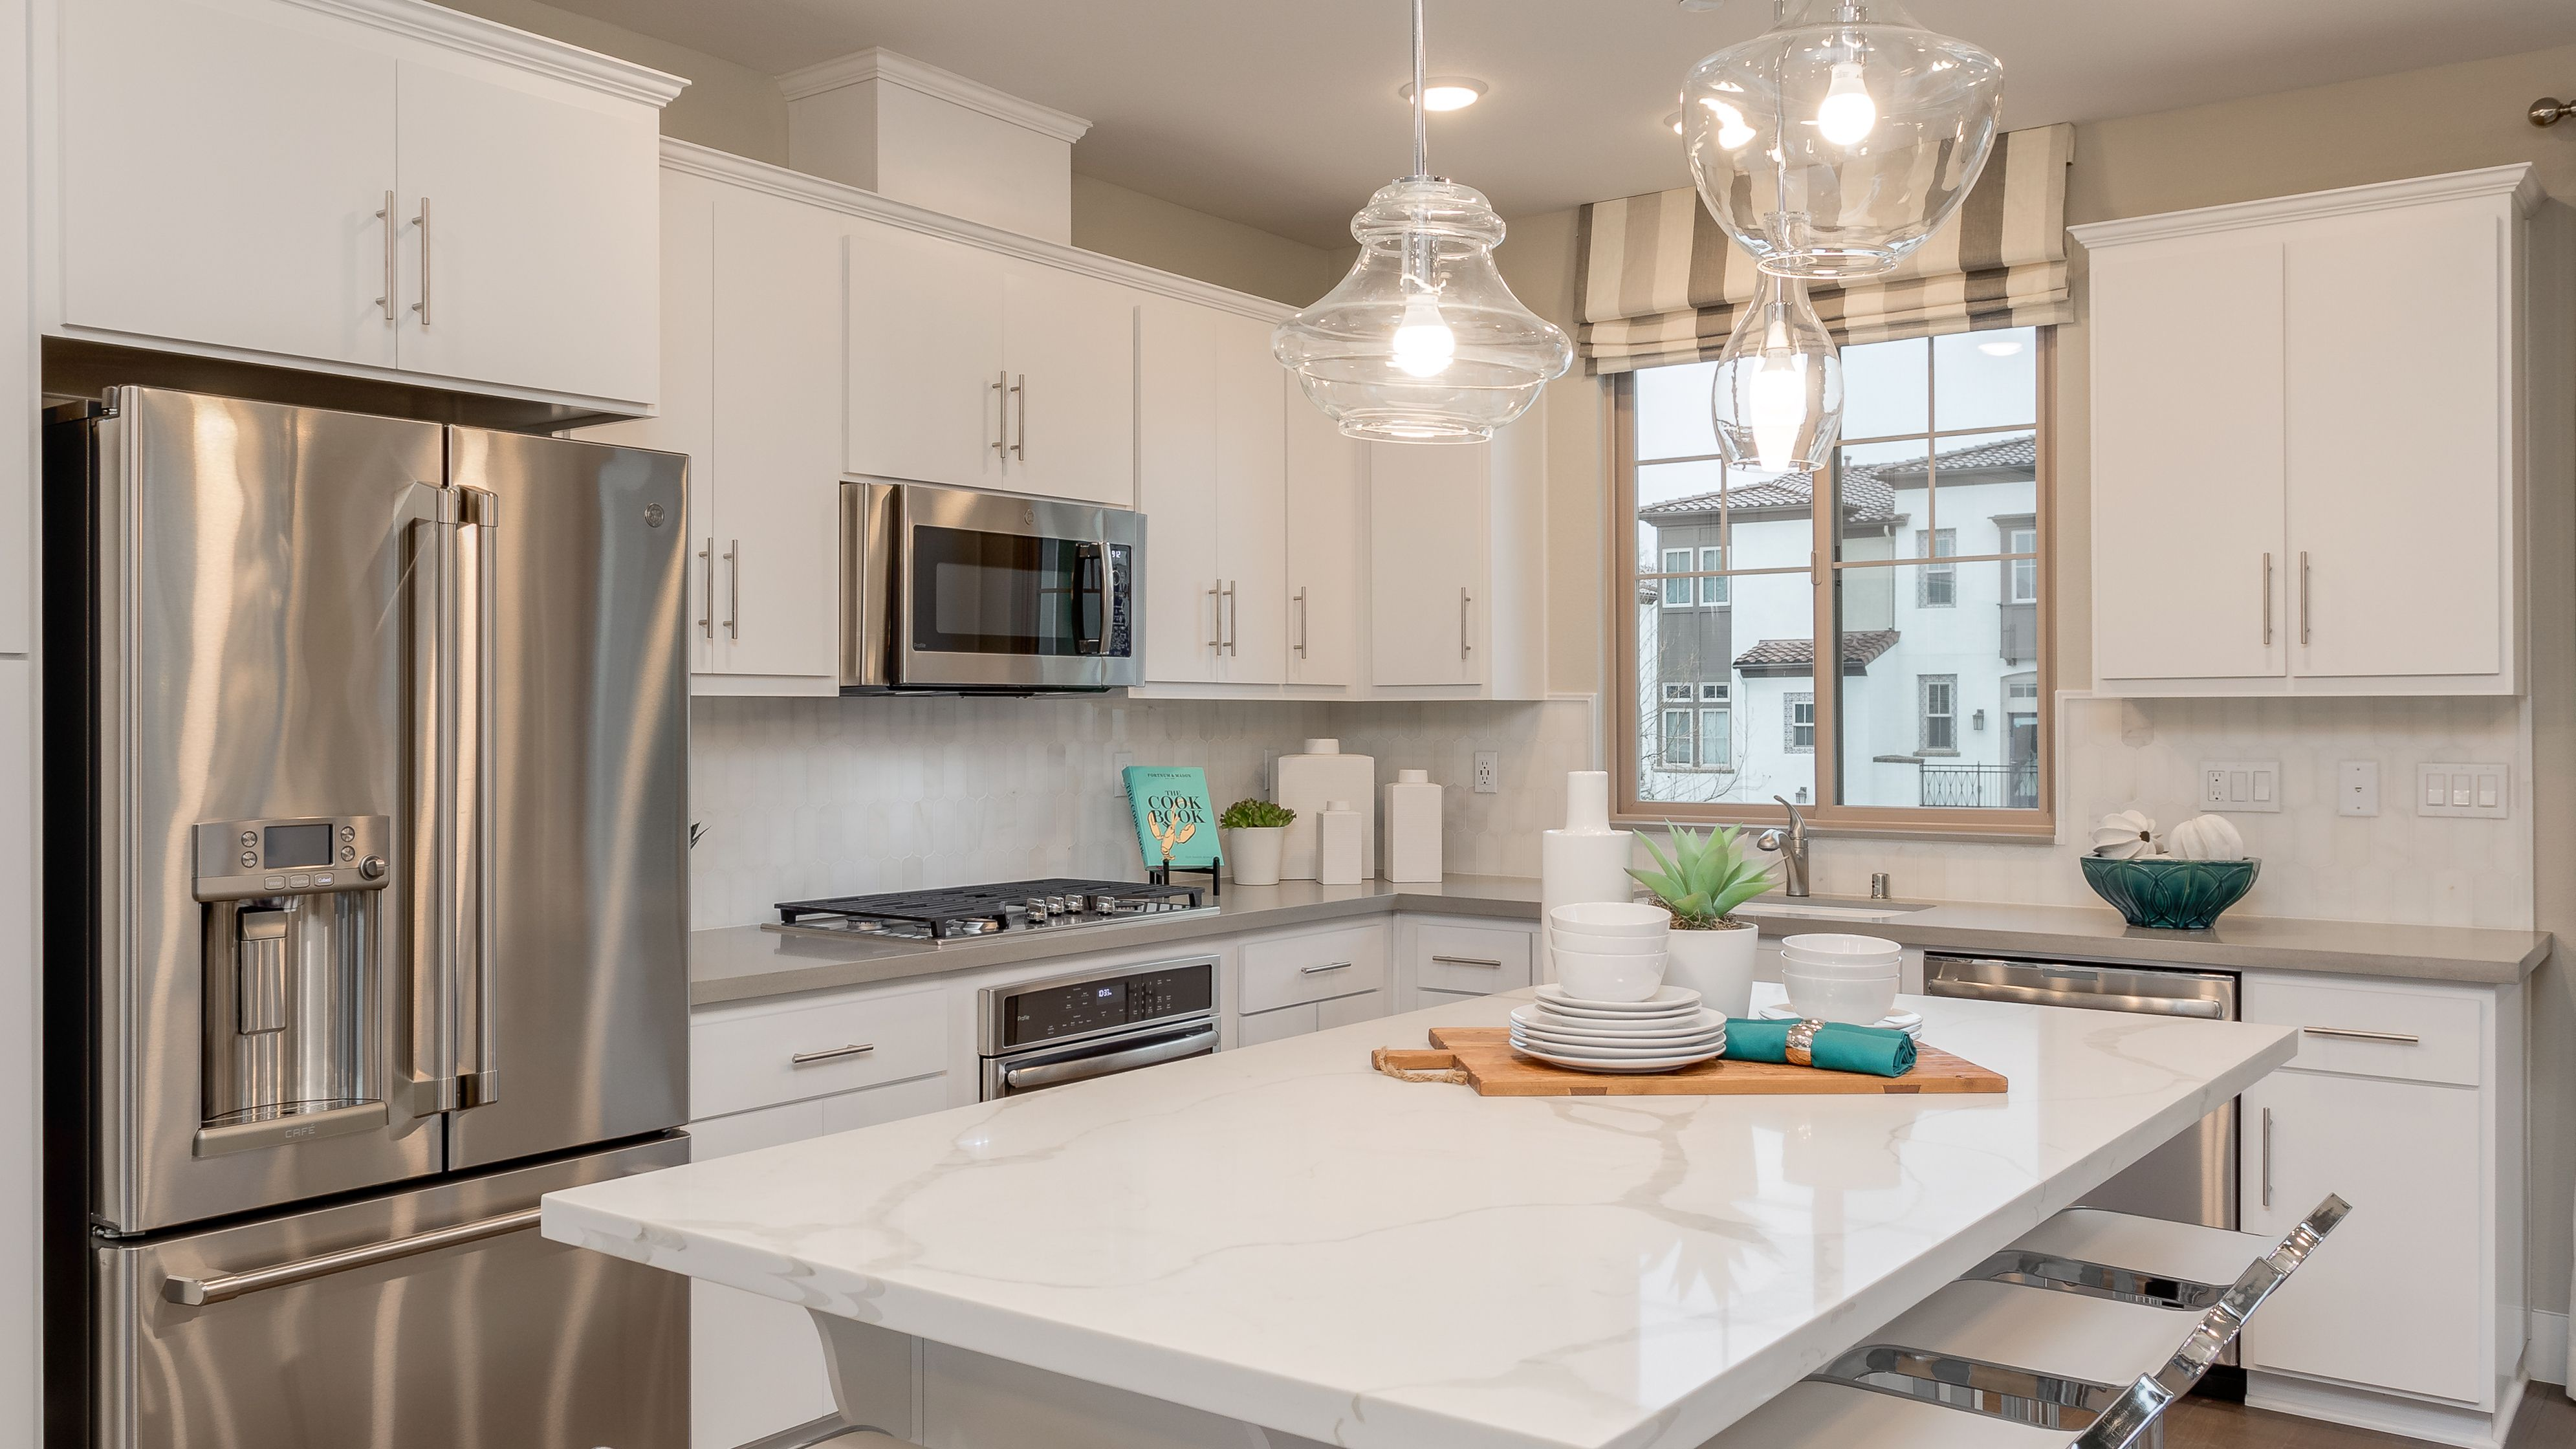 Kitchen-in-Residence 4-at-6Sixty-in-Mountain View